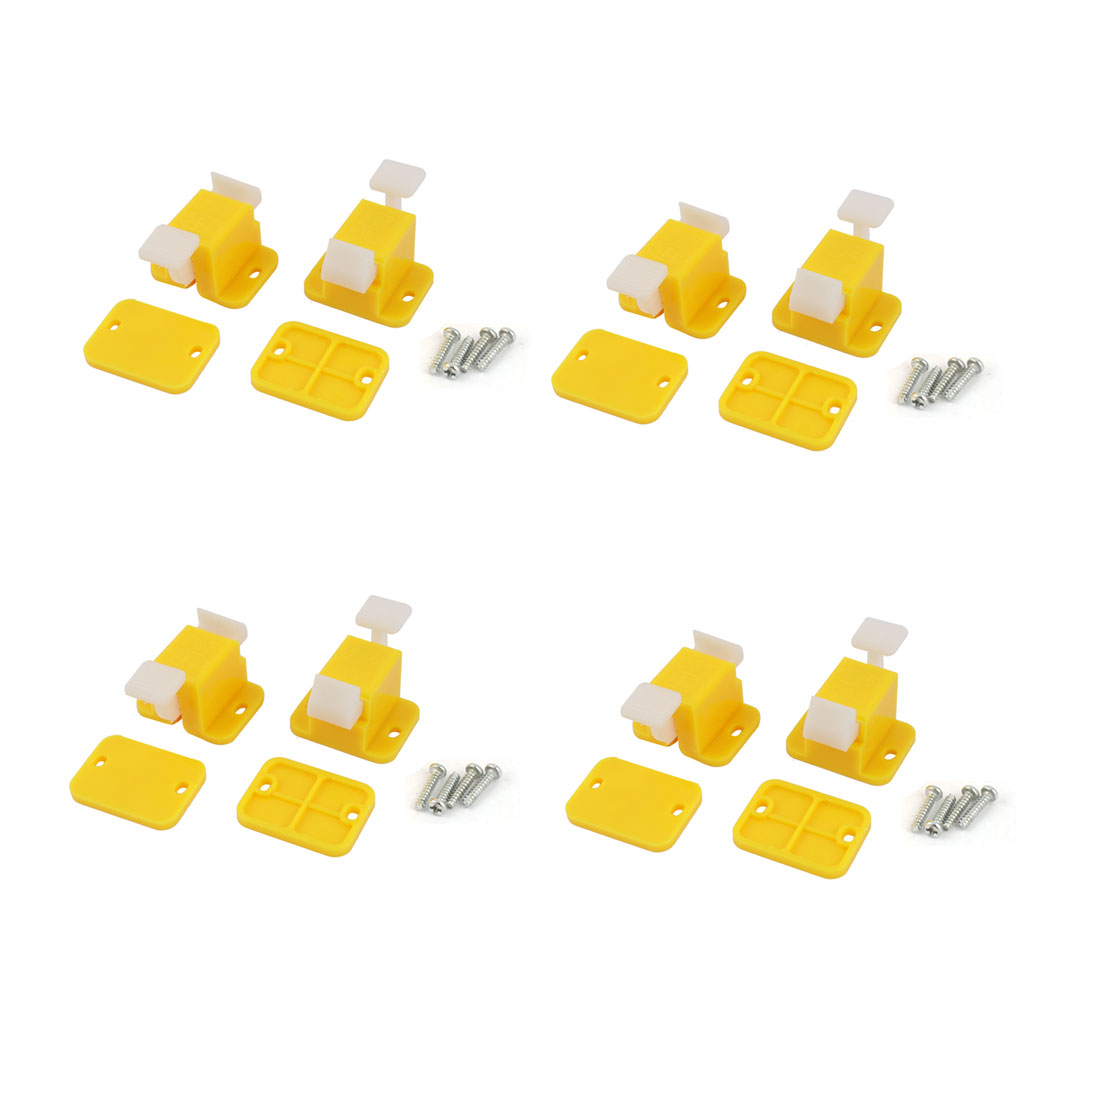 8 Pcs Plastic Prototype Test Fixture Jig Yellow White for PCB Board